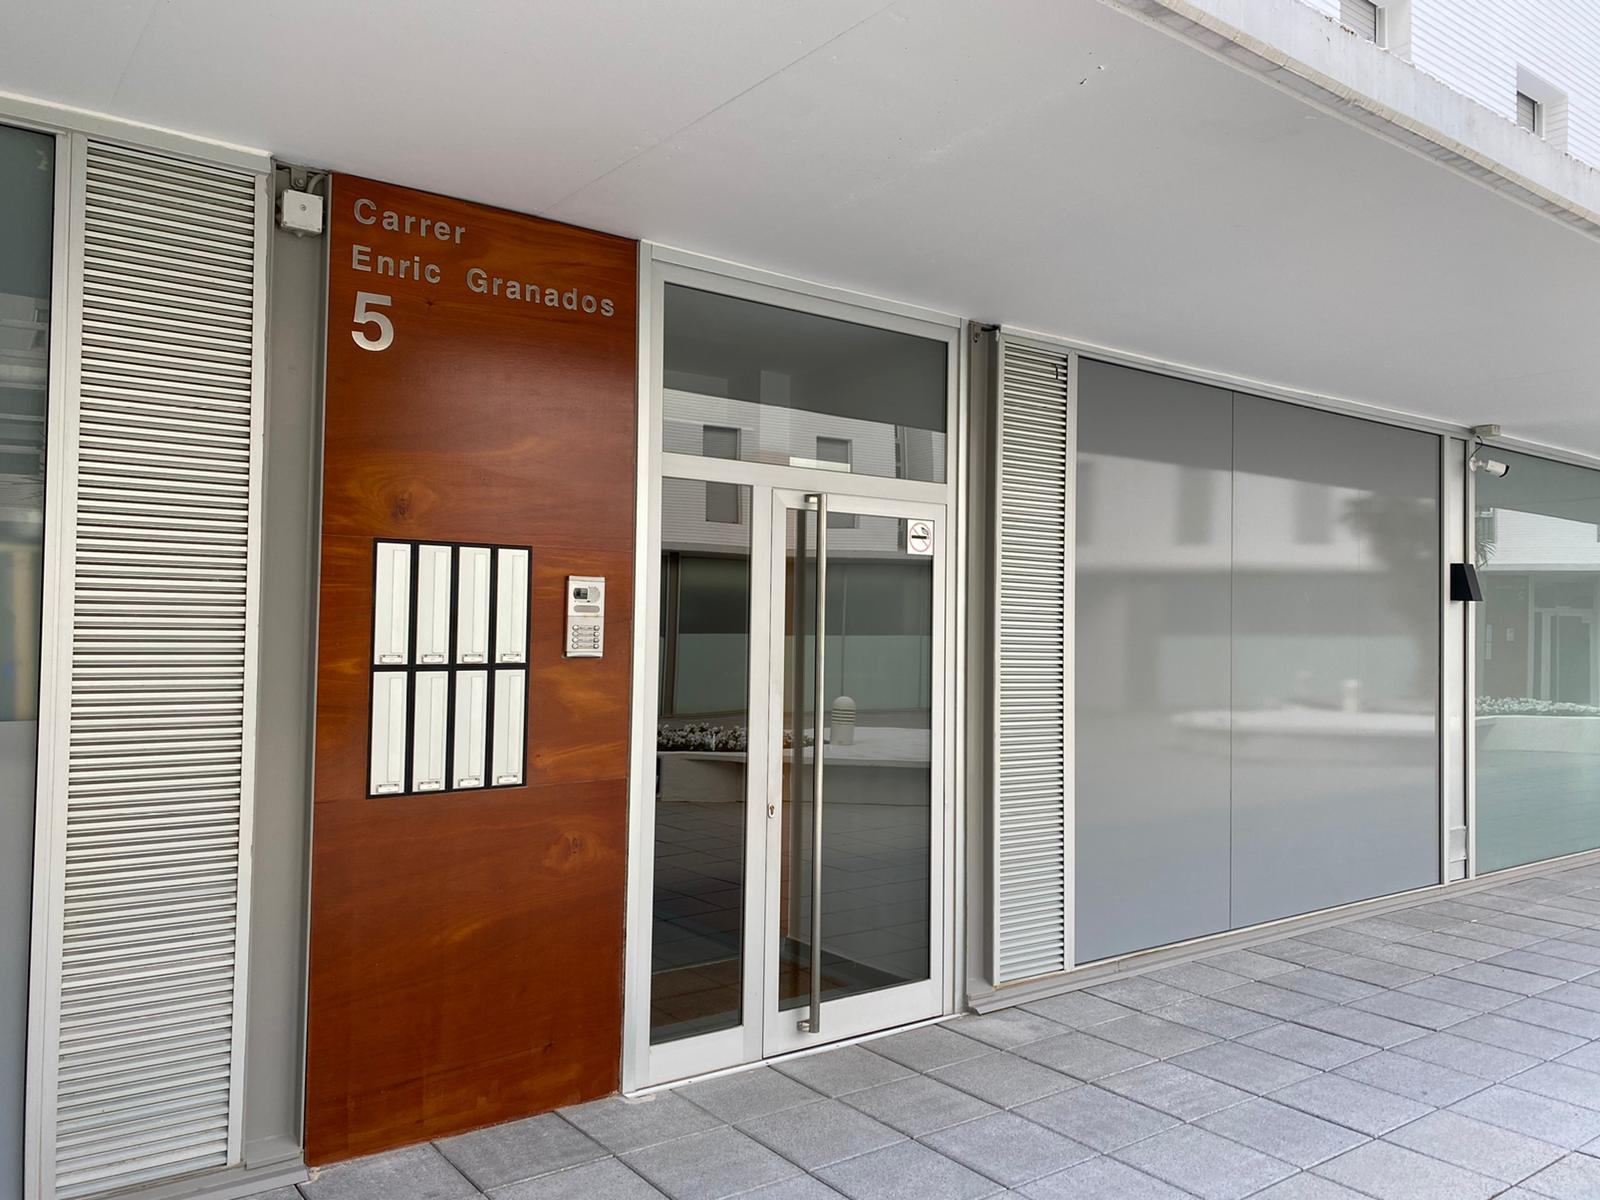 Entrance to the apartment building